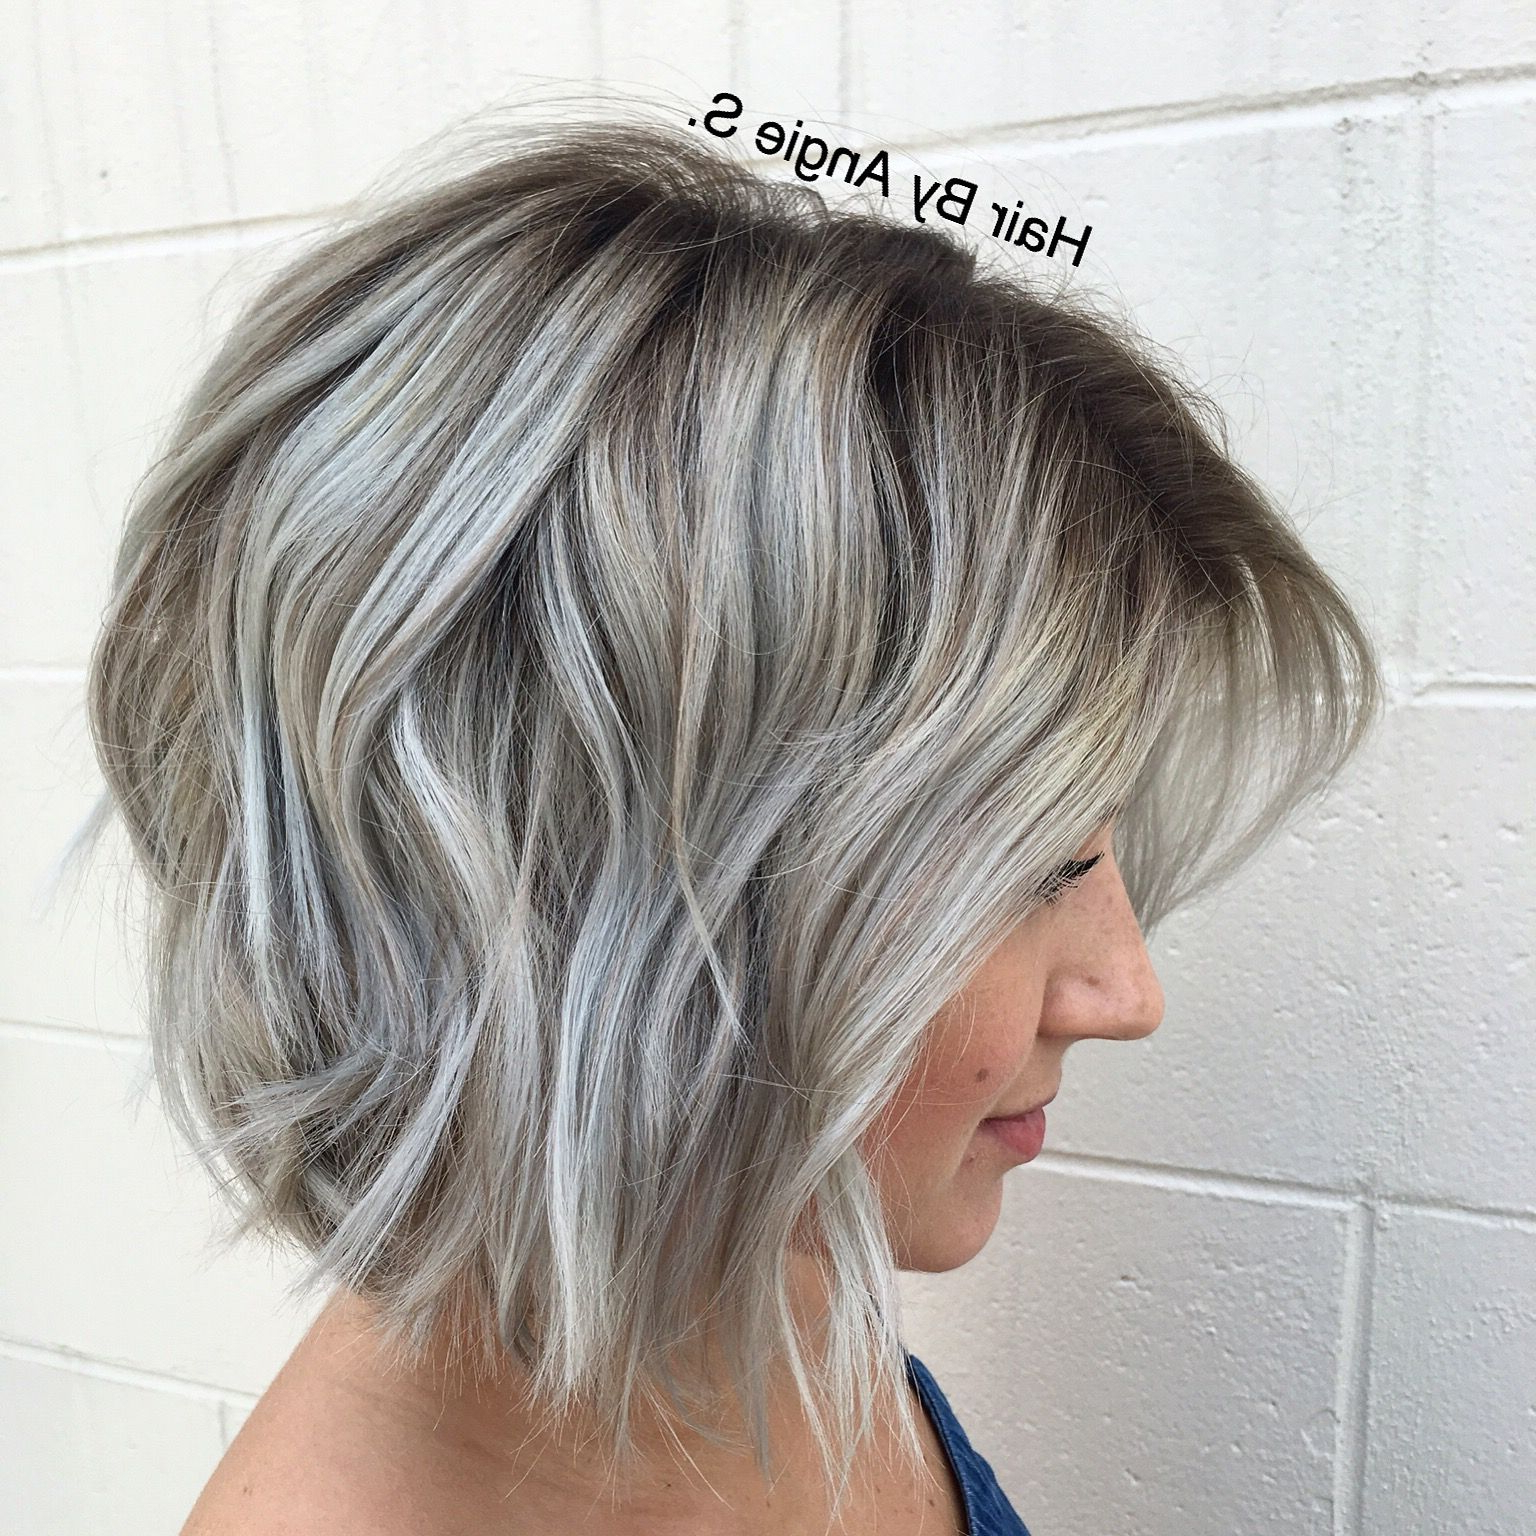 So Obsessed With My Hair : Dimensional Silver/grey #balayage Within Short Ash Blonde Bob Hairstyles With Feathered Bangs (View 6 of 20)